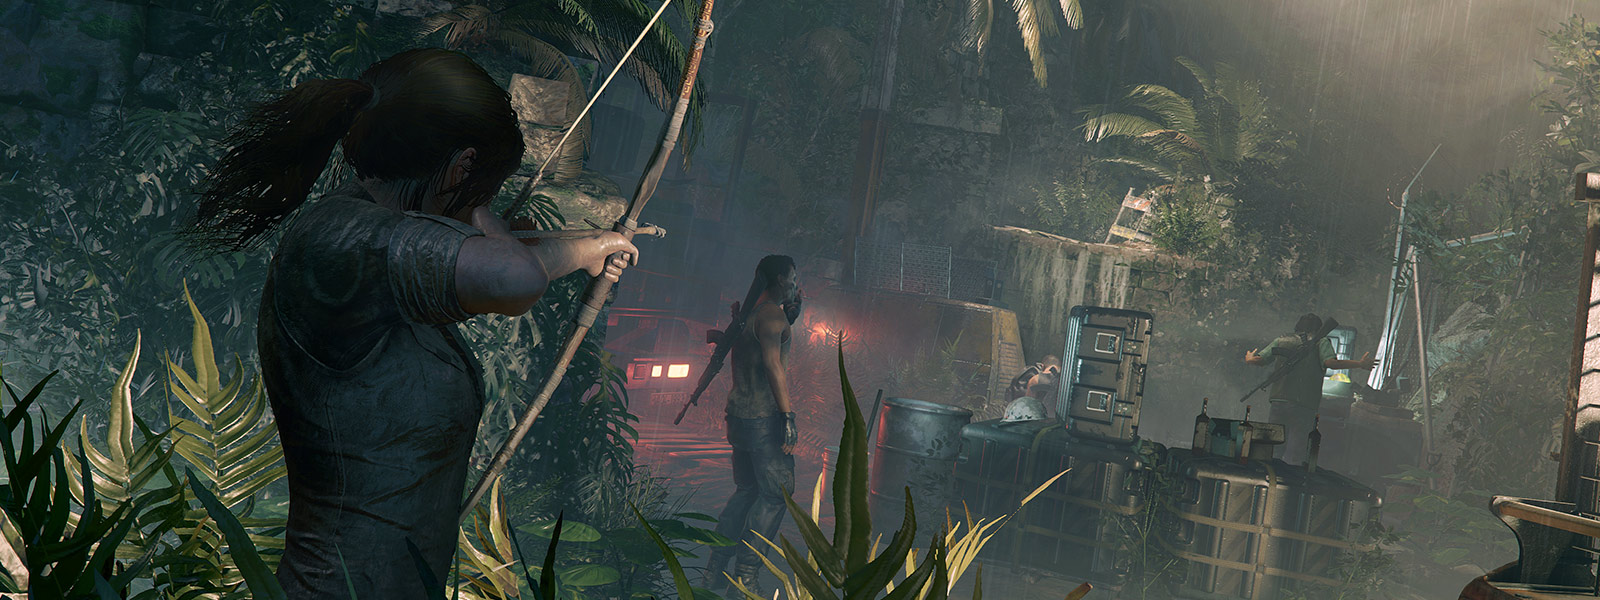 Lara Croft readies her bow toward a small encampment with men